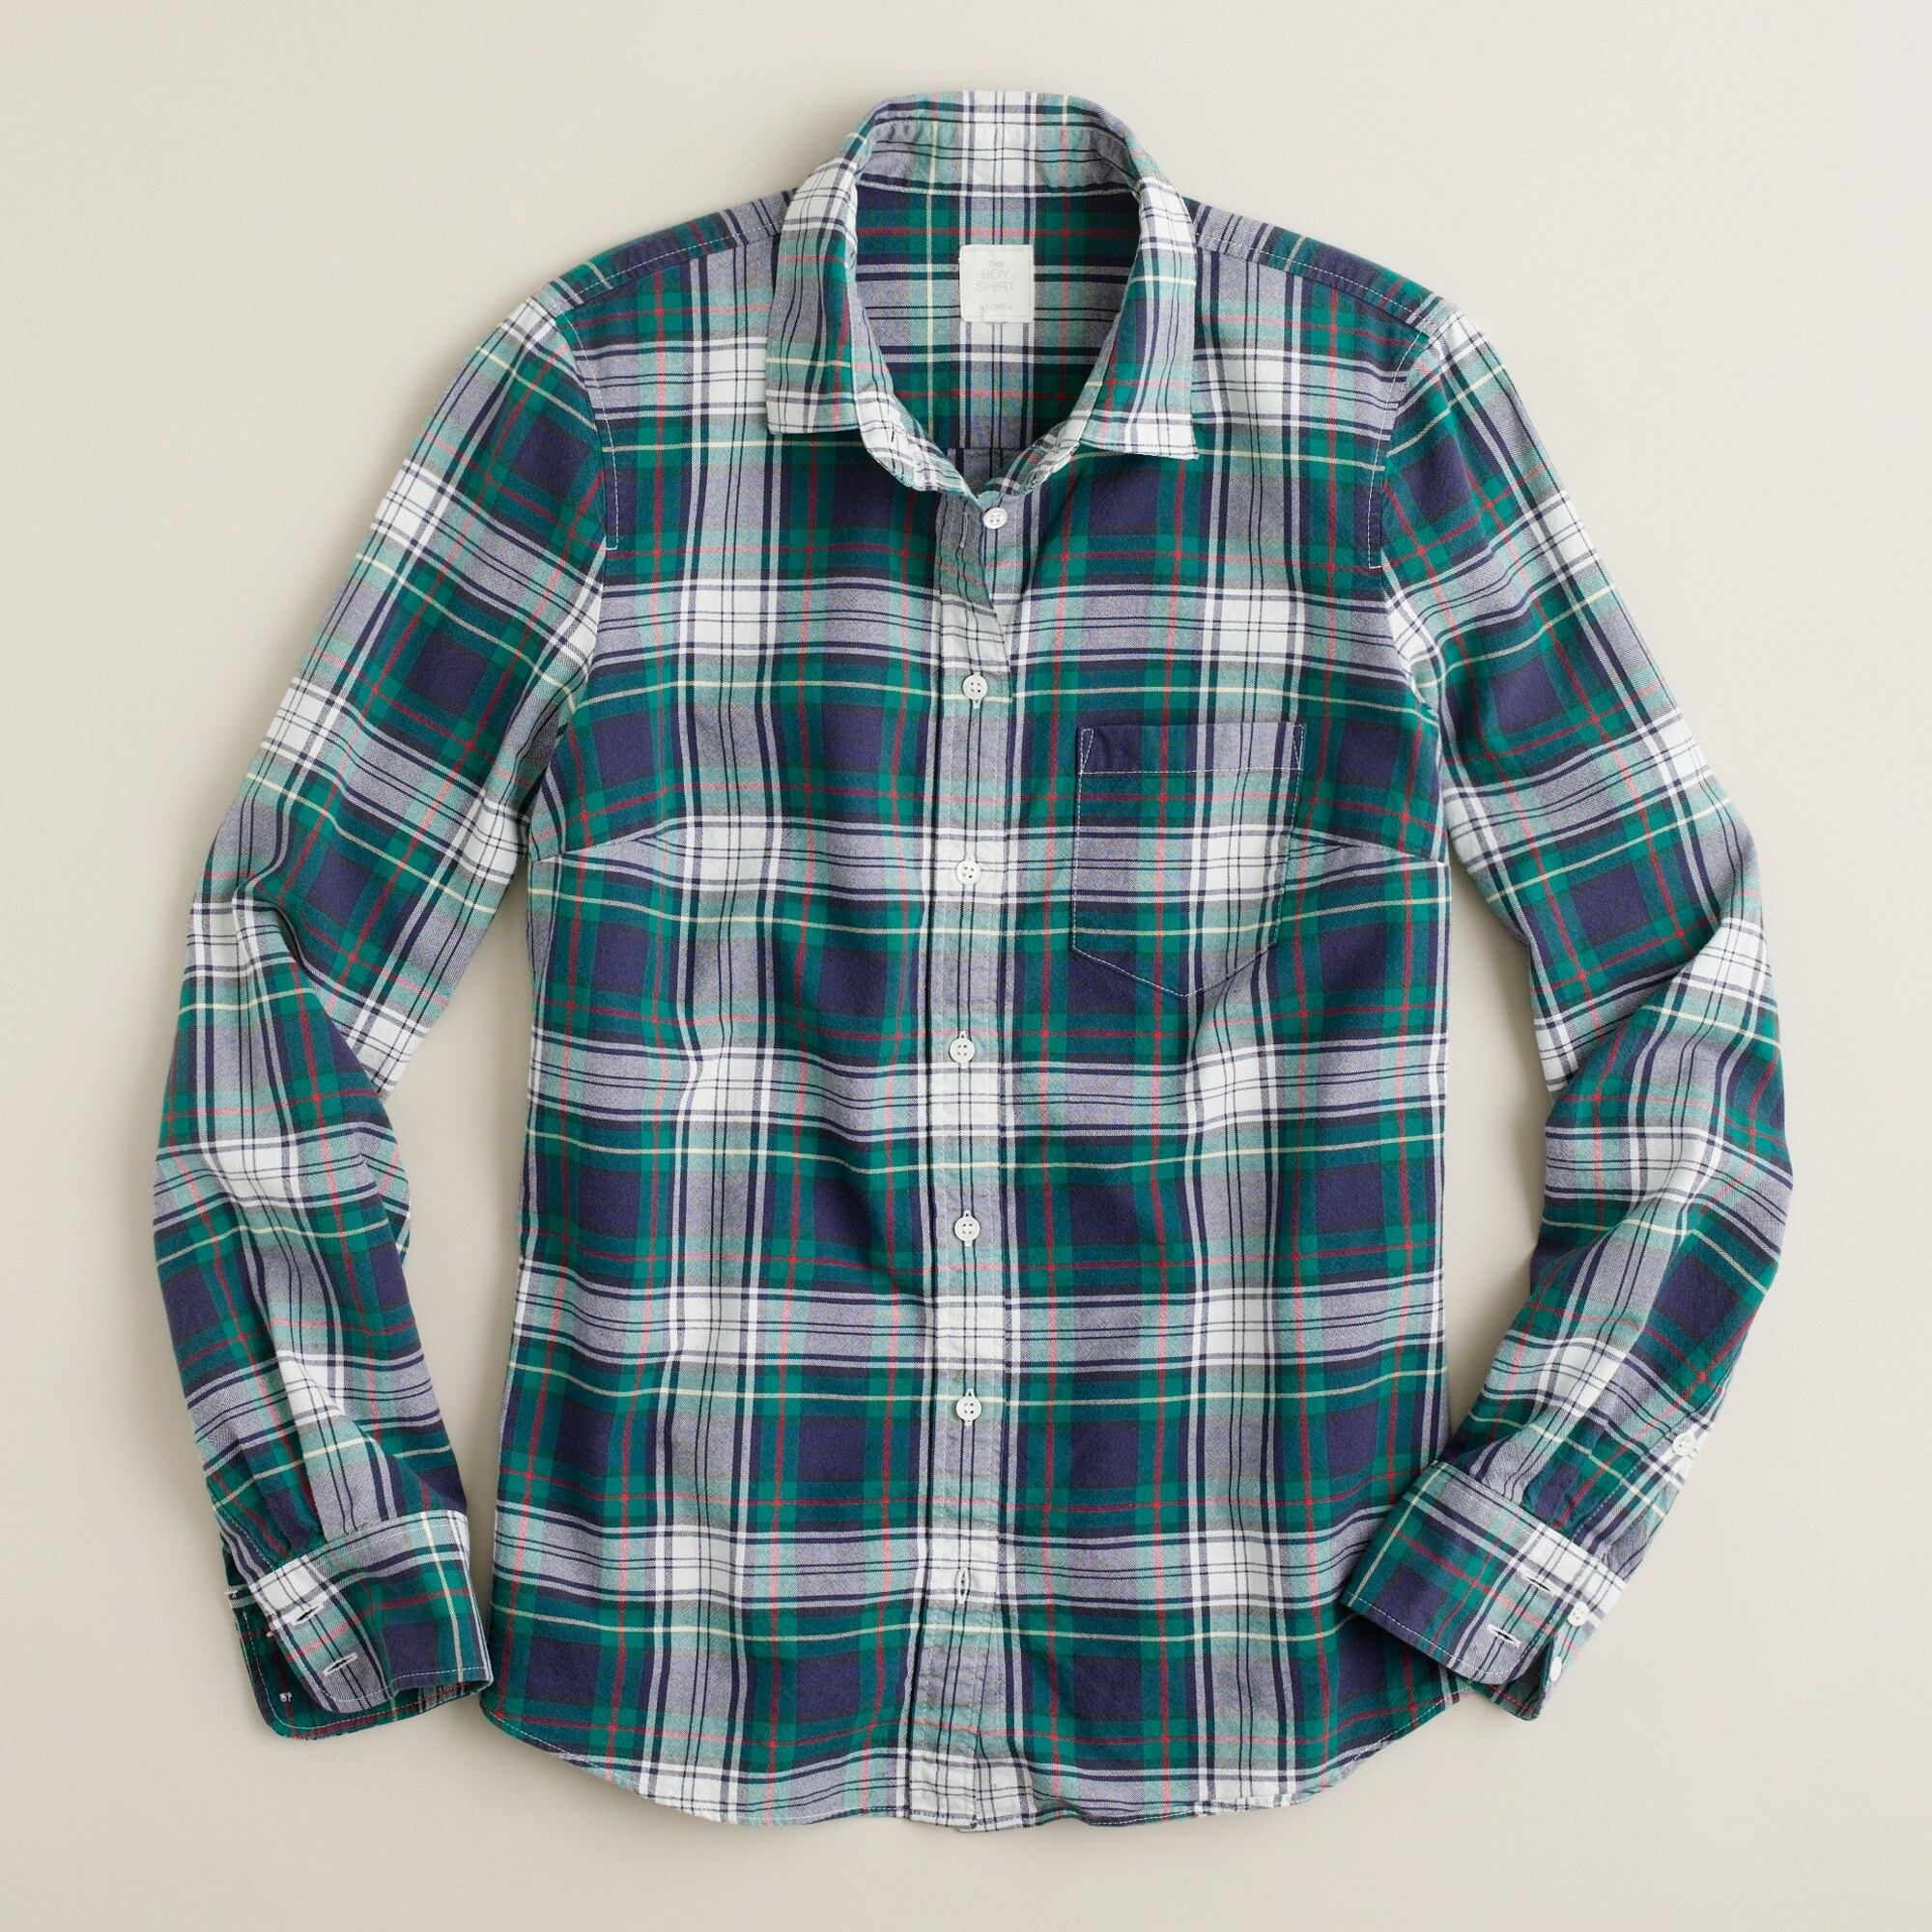 Boy shirt in Carrick tartan